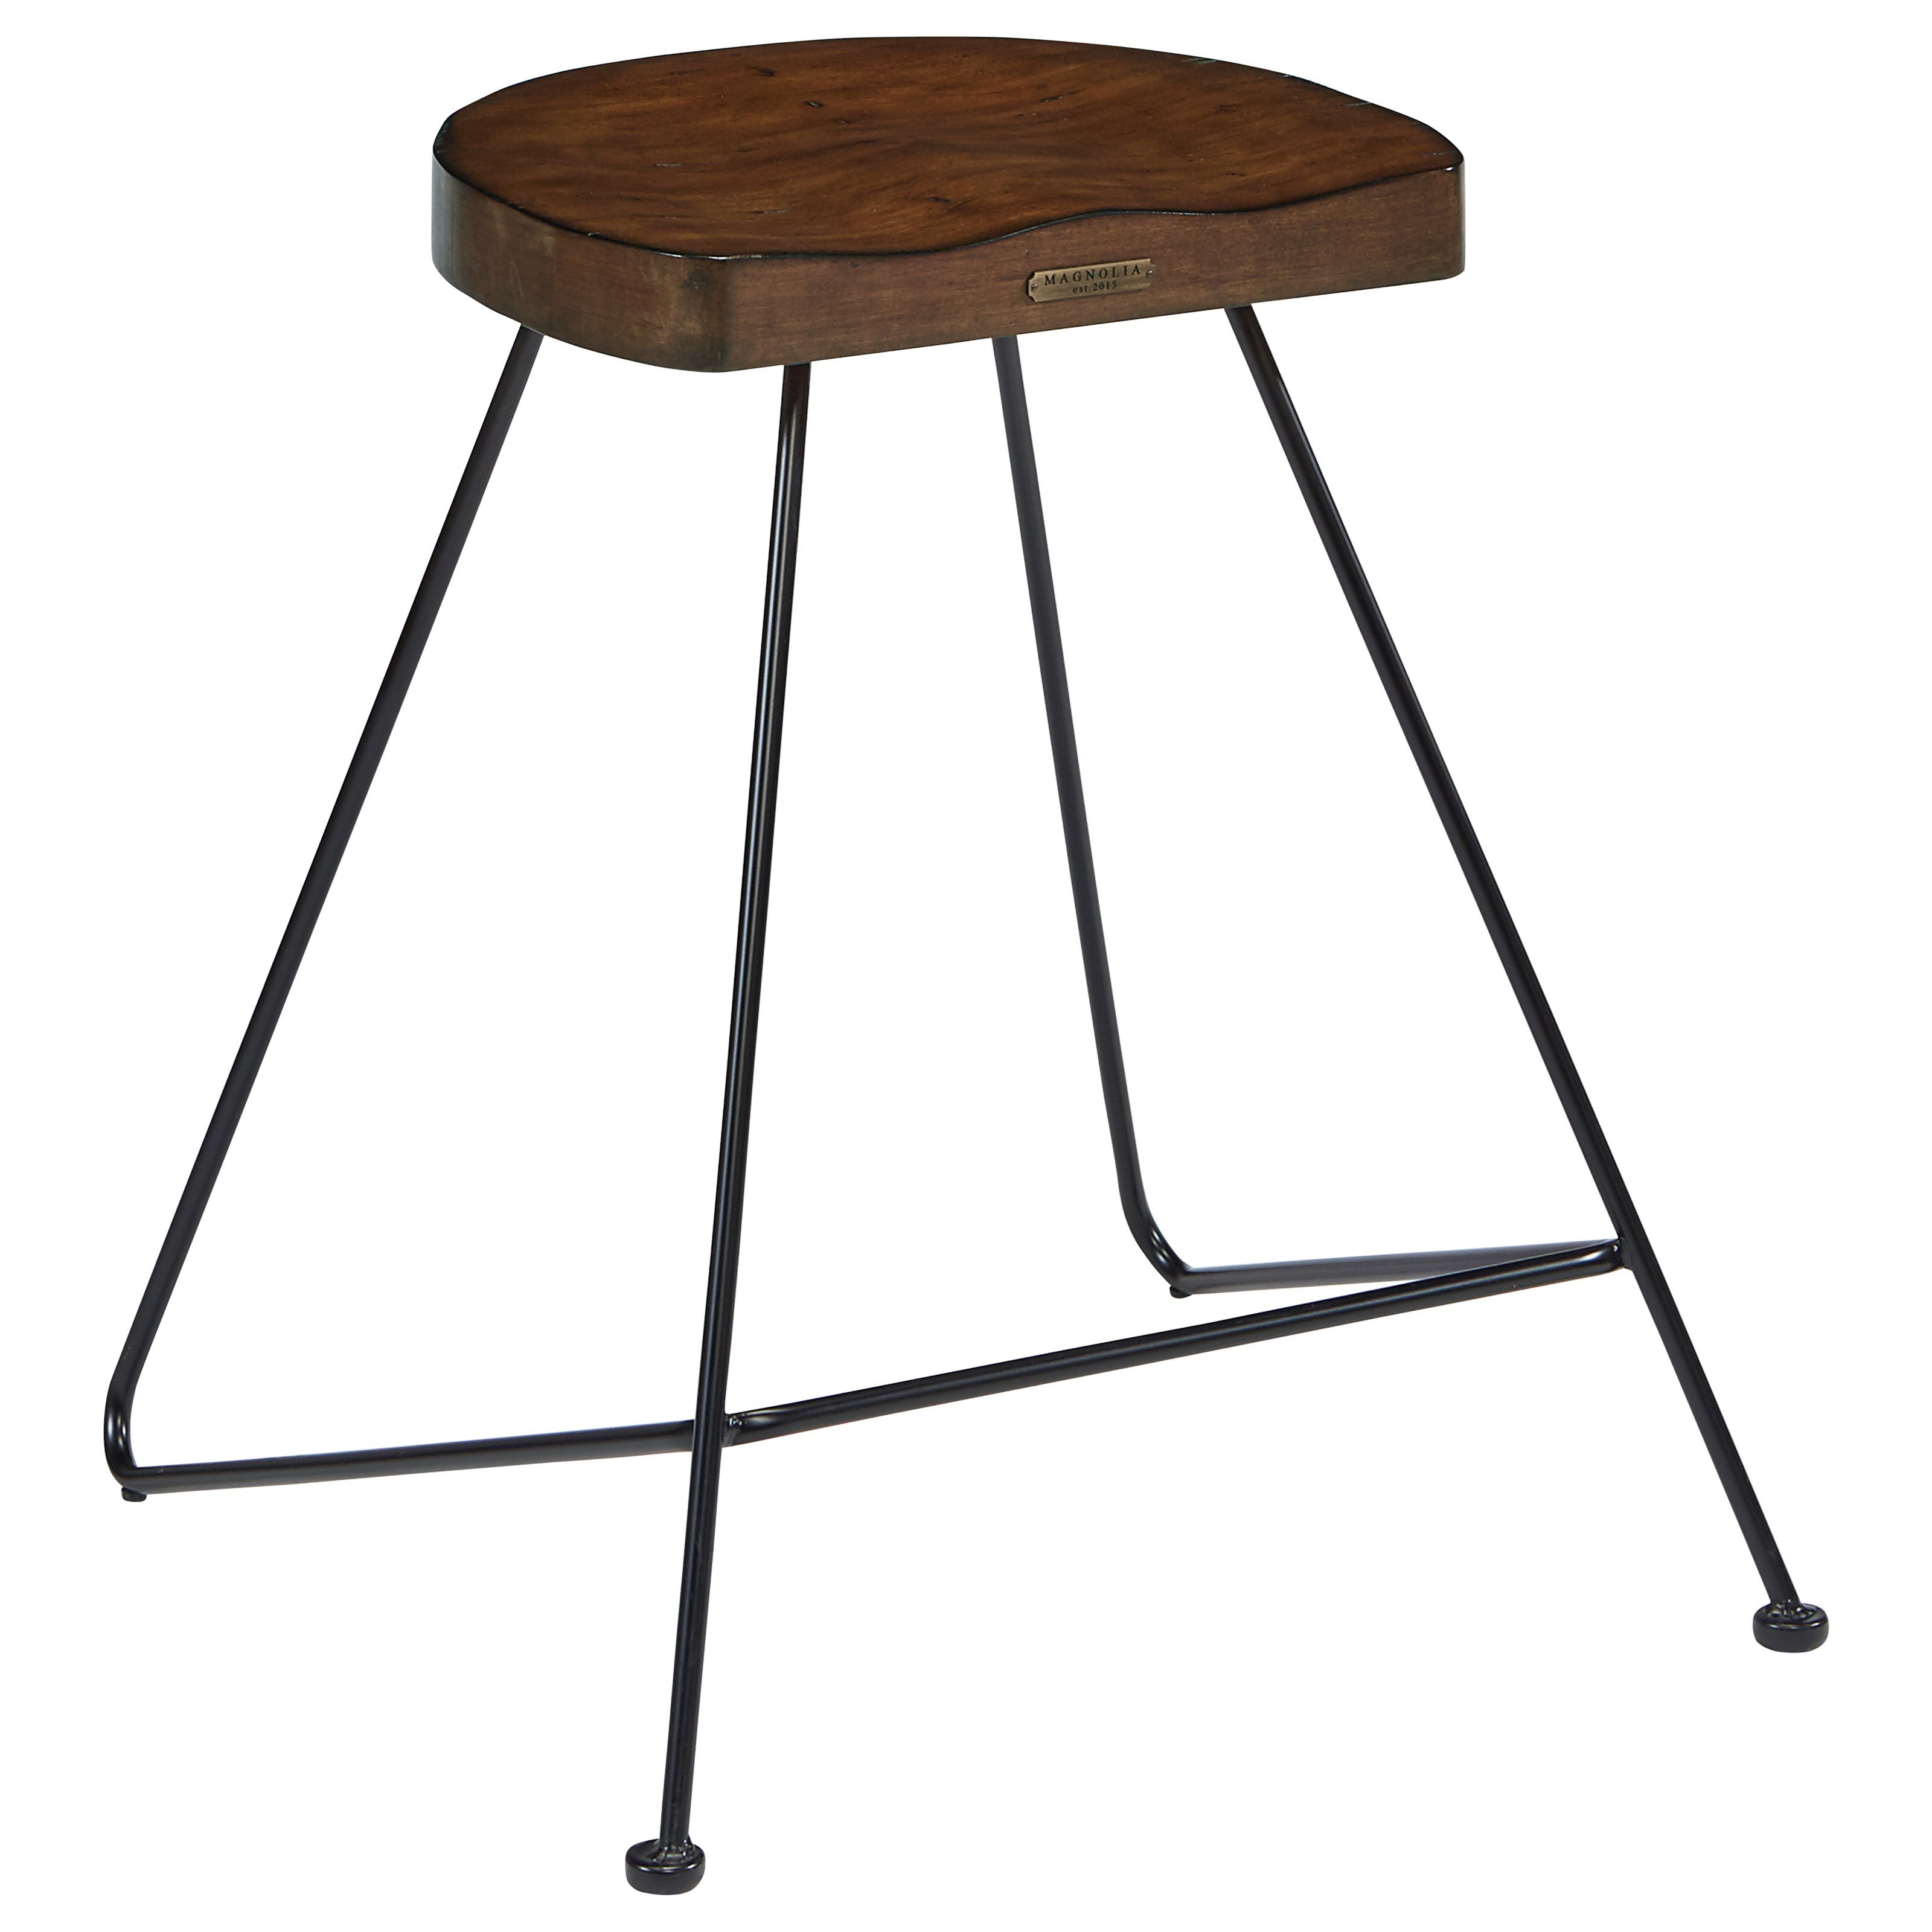 Magnolia home by joanna gaines accent elements stool with for Magnolia home furniture bar stools